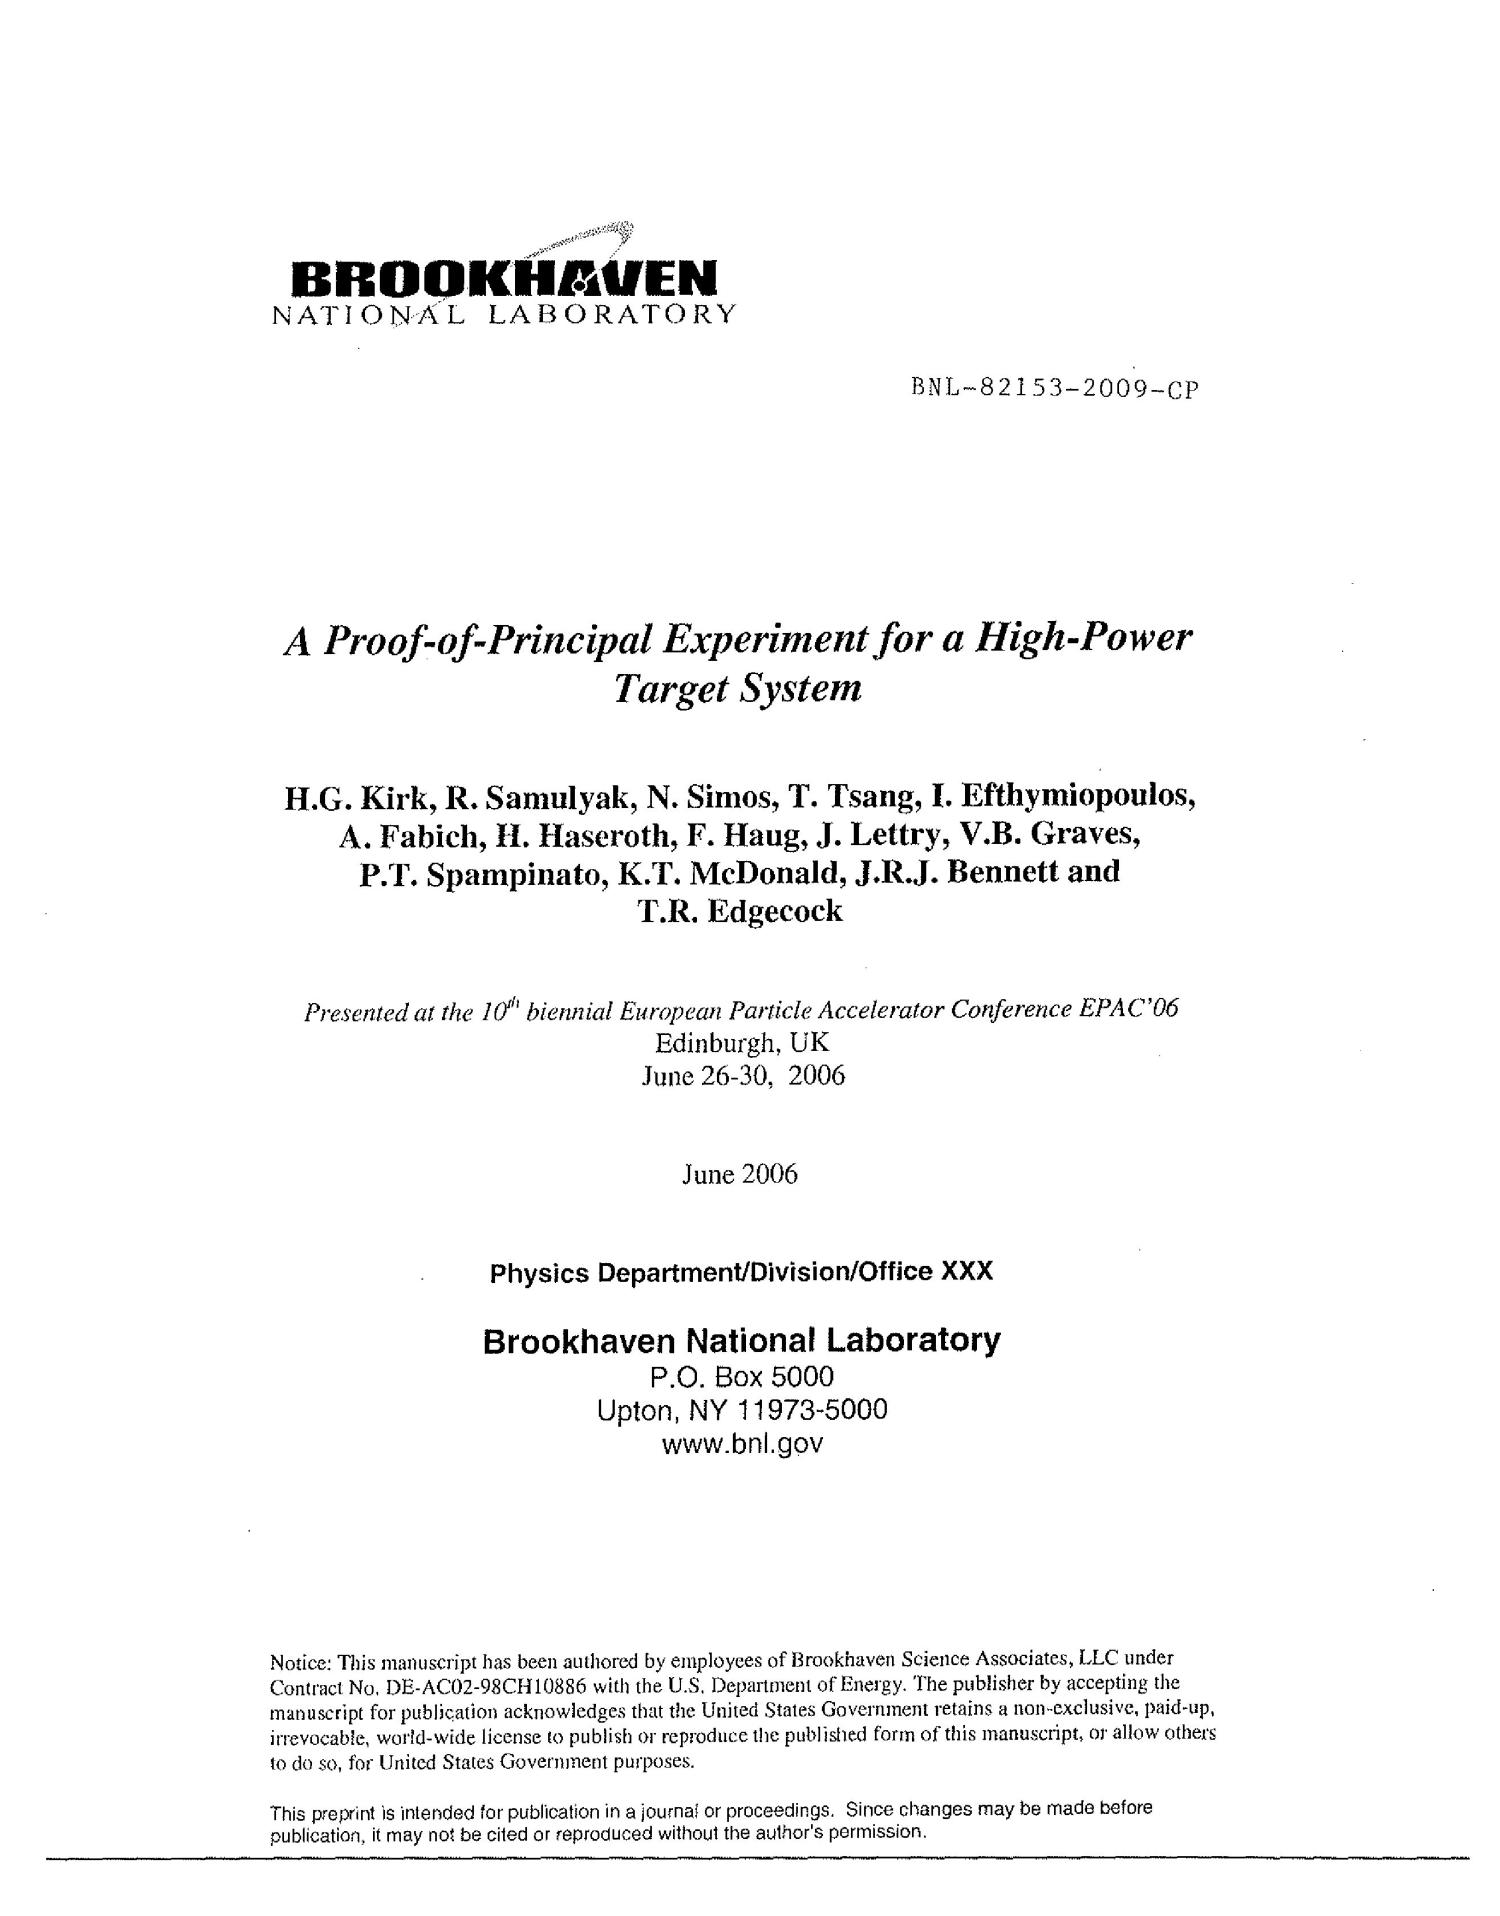 A Proof-of-Principal Experiment for a High-Power Target System                                                                                                      [Sequence #]: 1 of 5